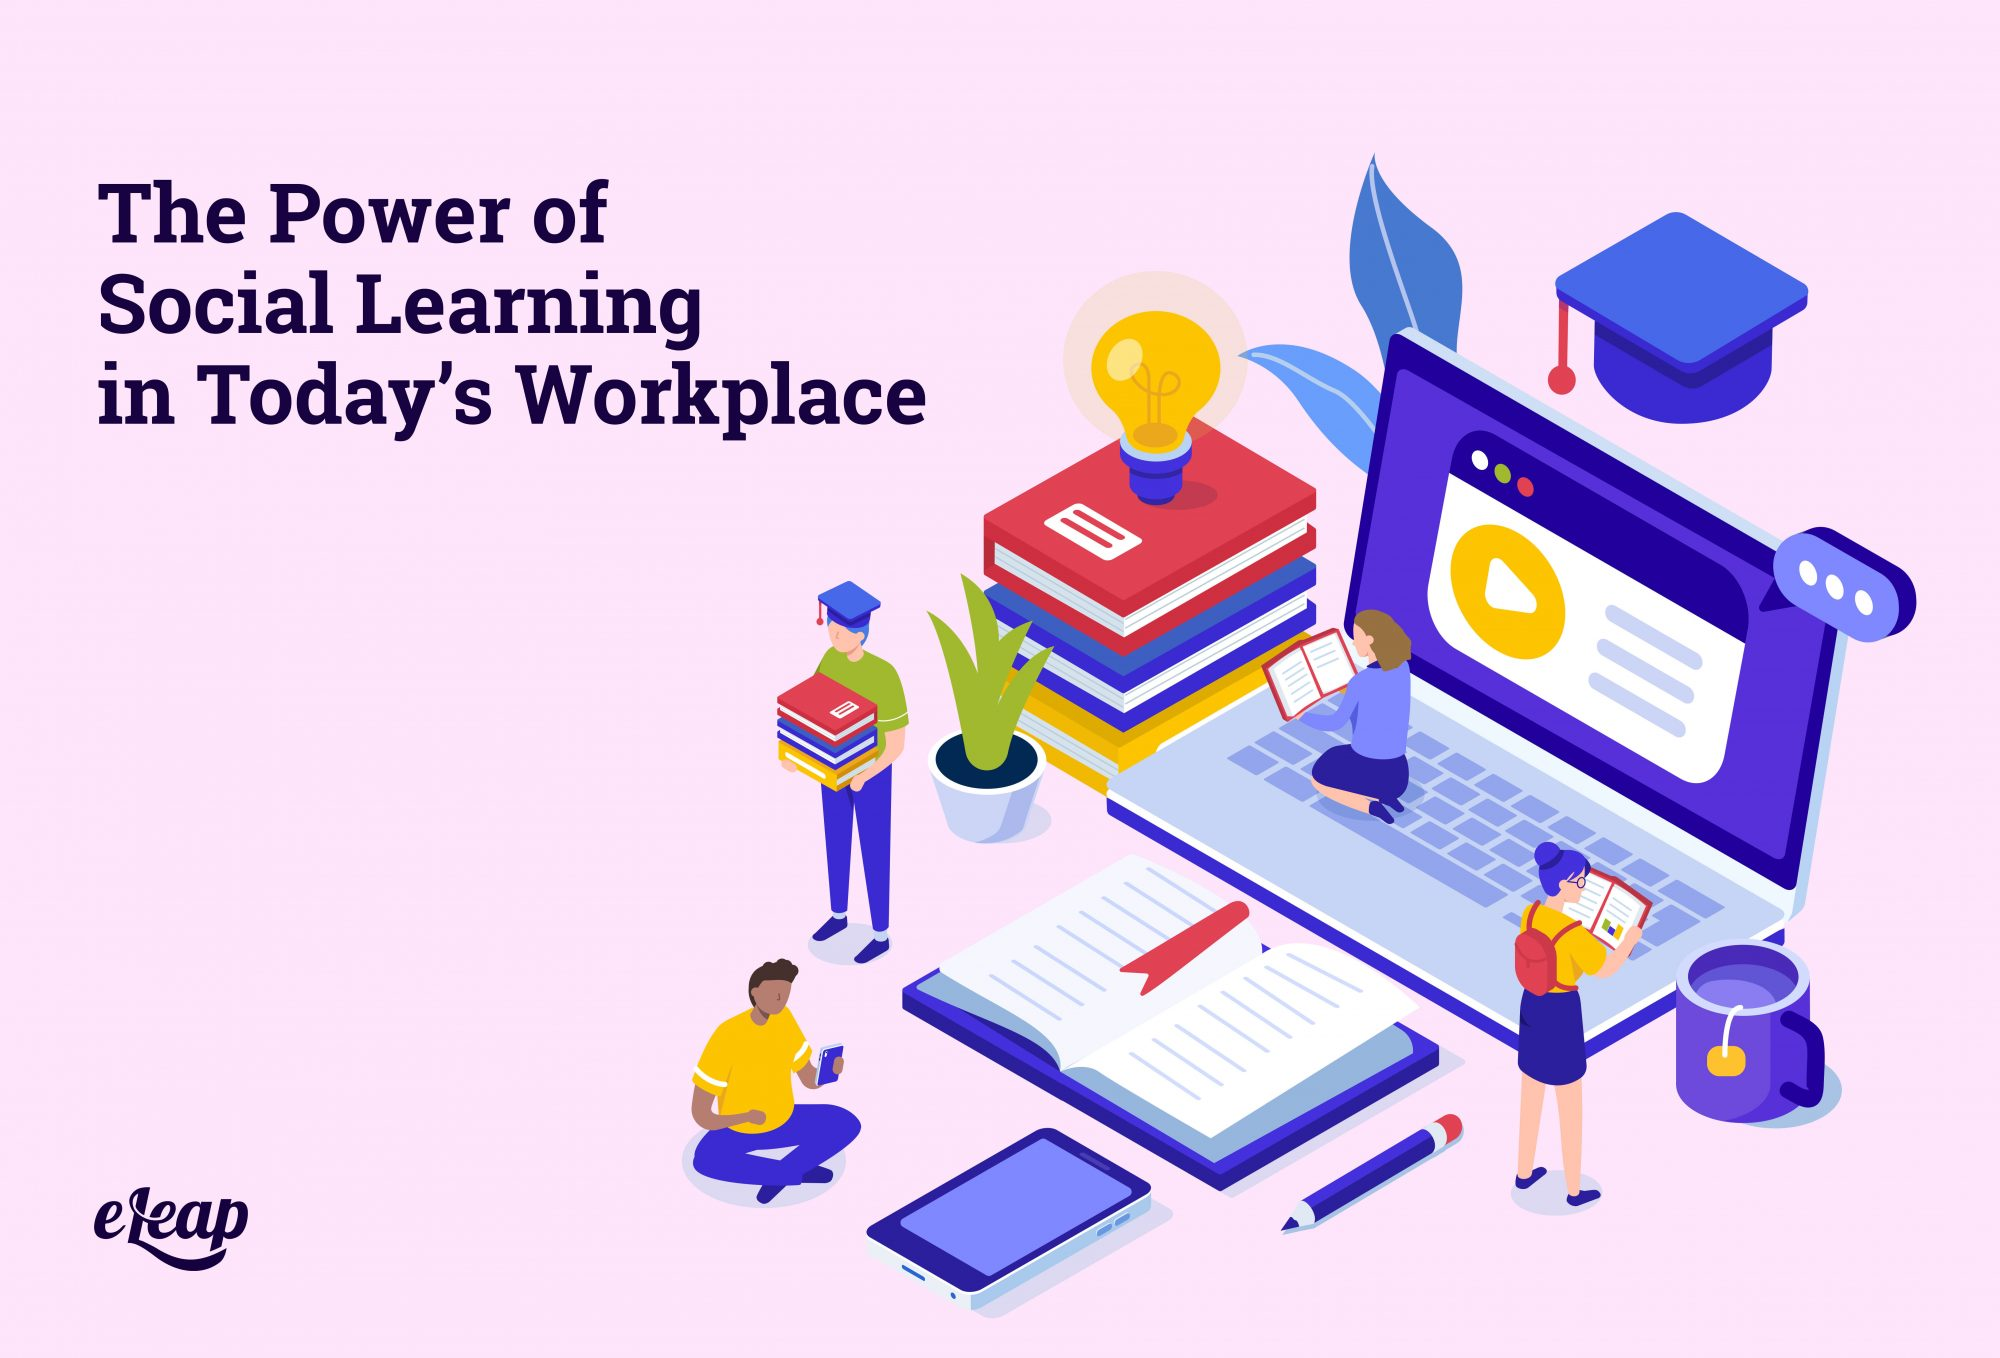 The Power of Social Learning in Today's Workplace